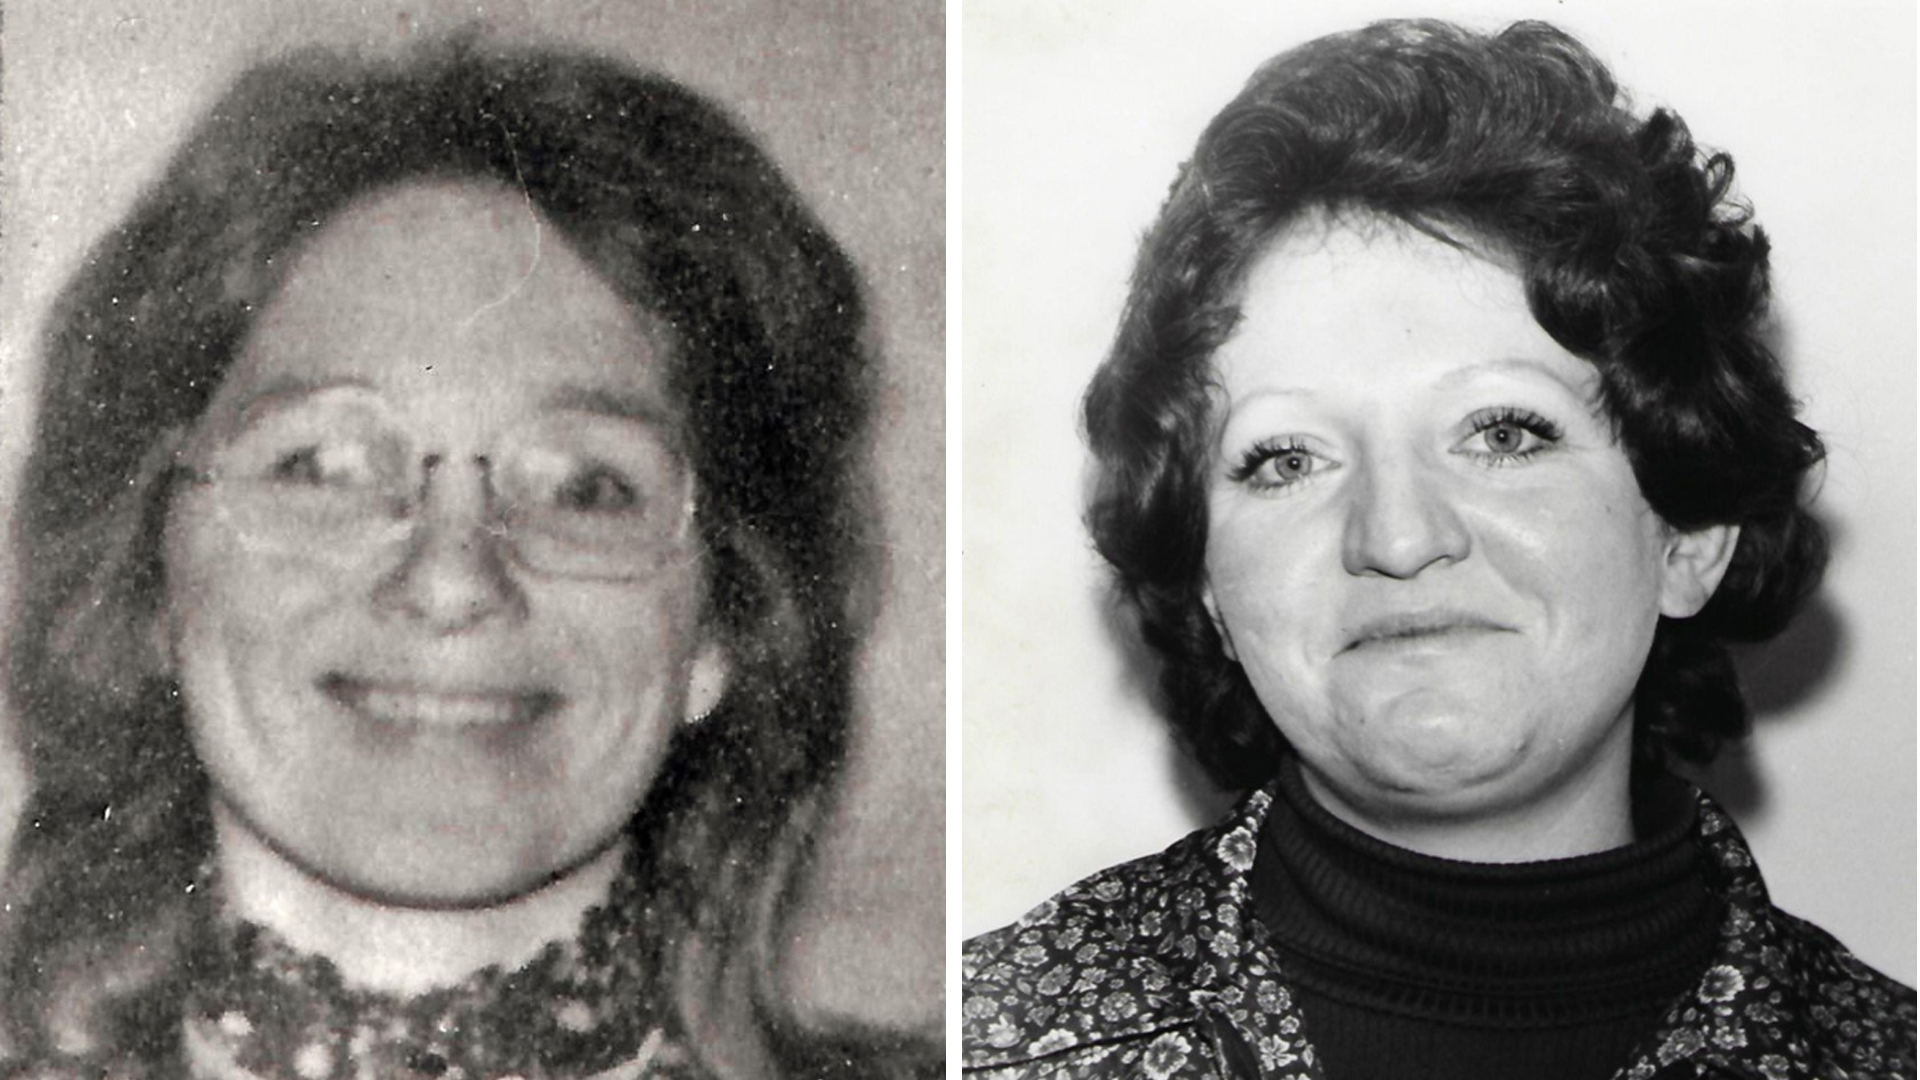 Jane Morton Antunez (left) and Patricia Dwyer (right) are seen in undated photos provided by the San Luis Obispo County Sheriff's Office on April 17, 2019.